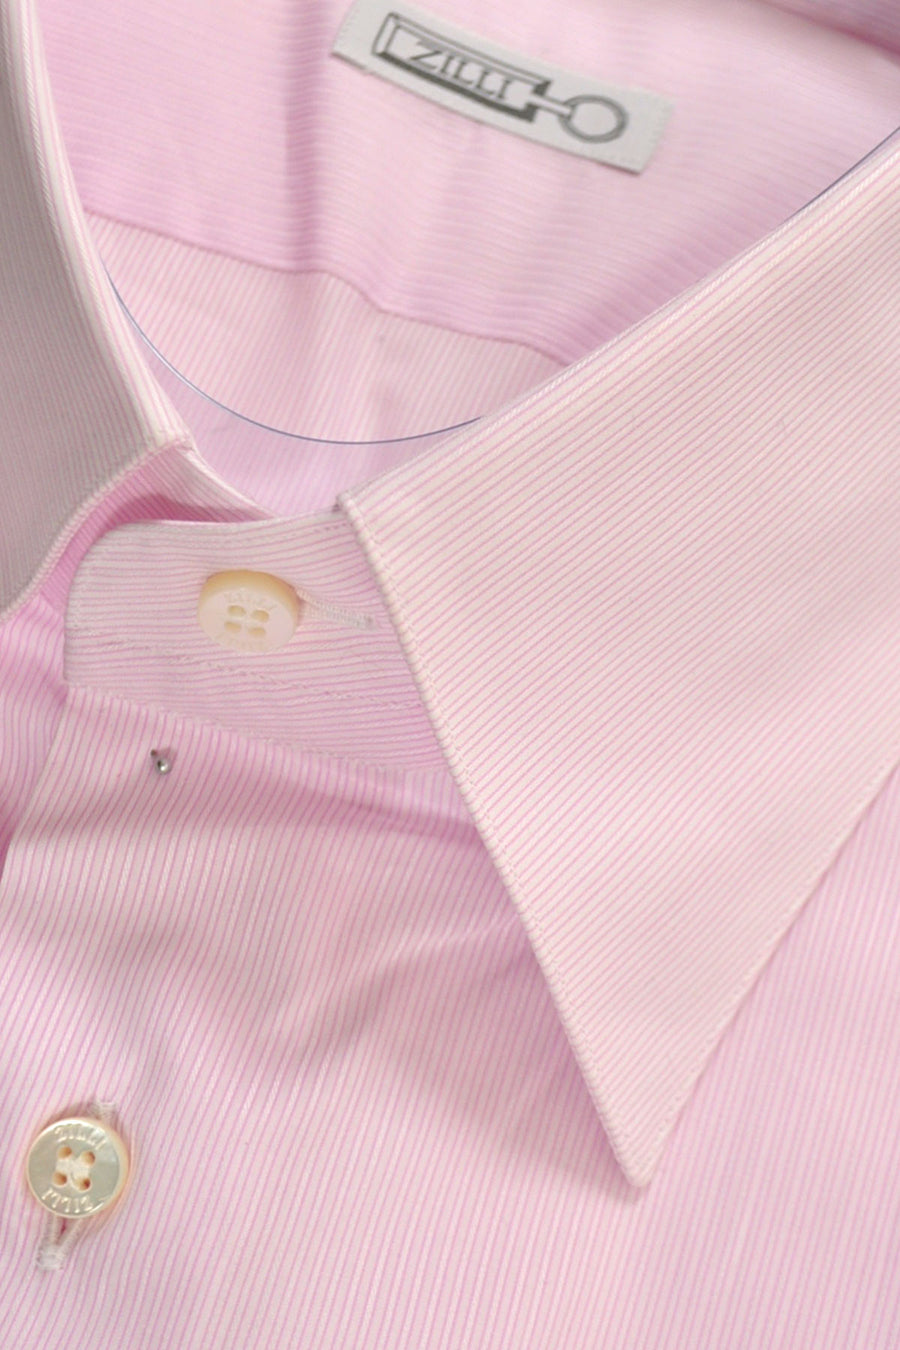 Zilli Shirt Pink Stripes